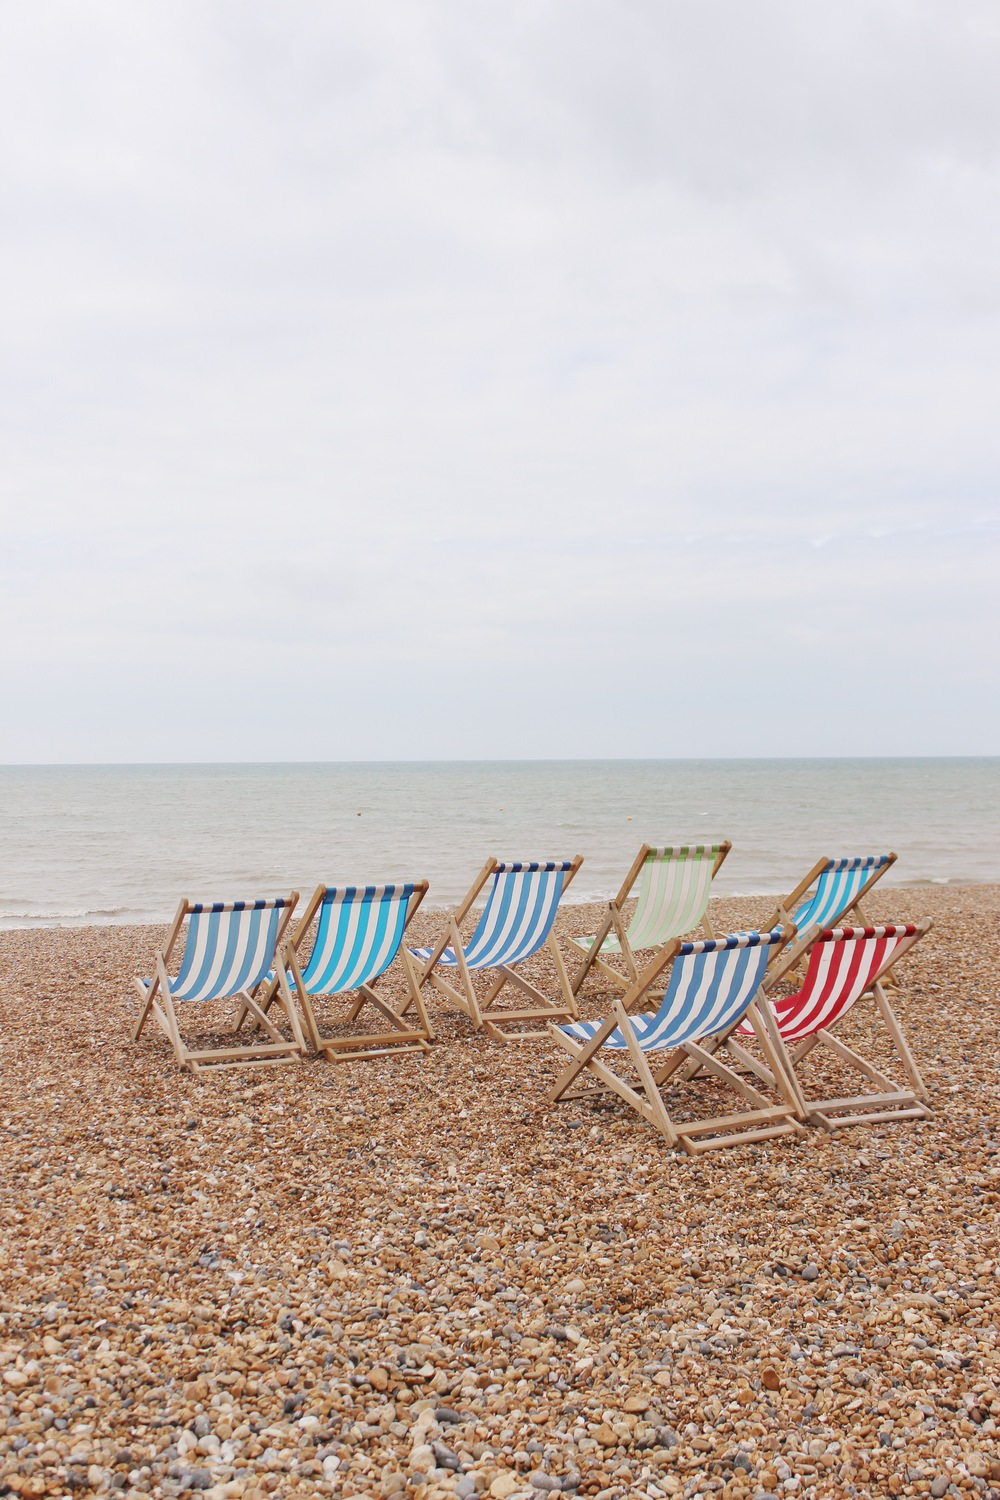 A beach day in Brighton, England.